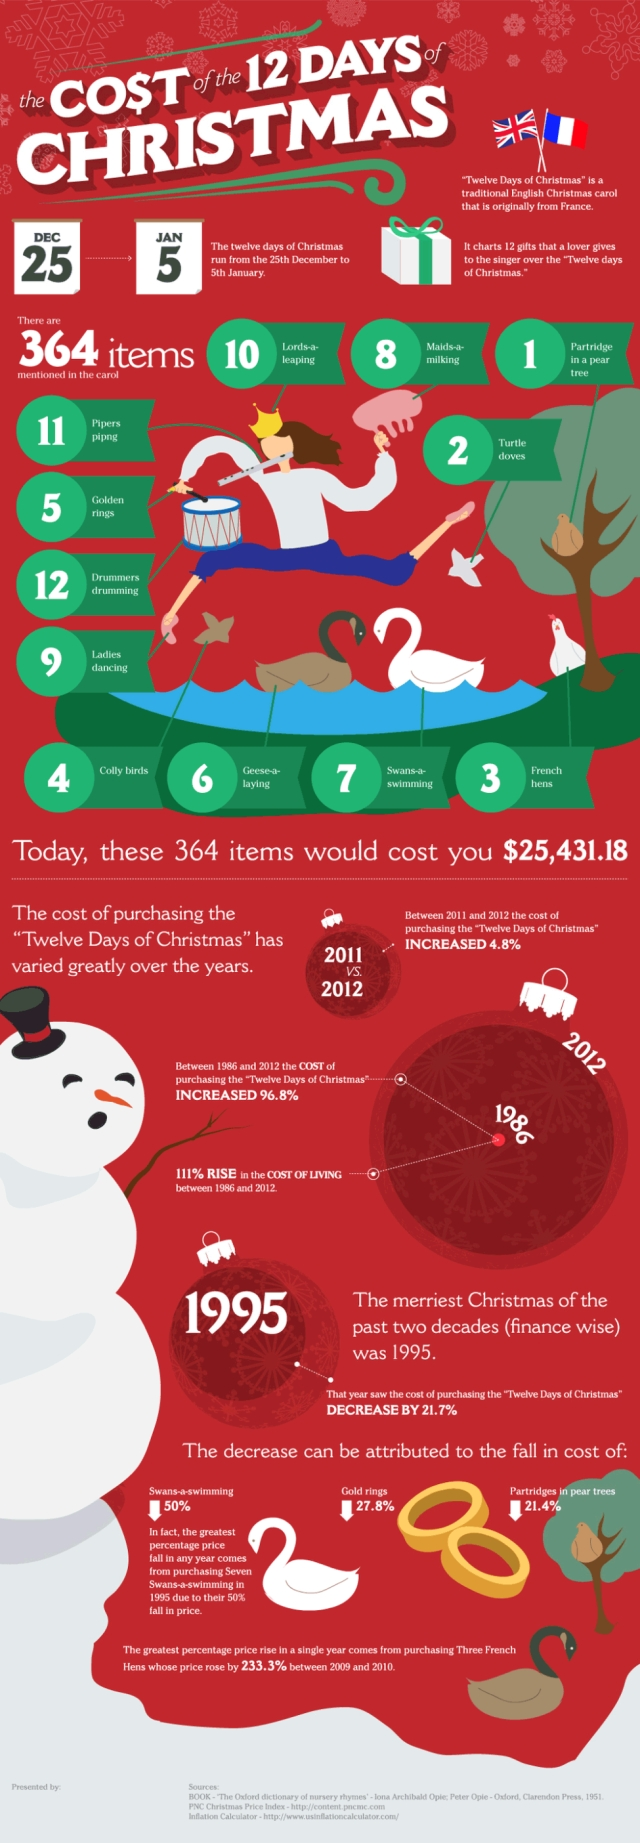 The Cost of The 12 Days of Christmas   Animated Infographic image the cost of the 12 days of christmas 640